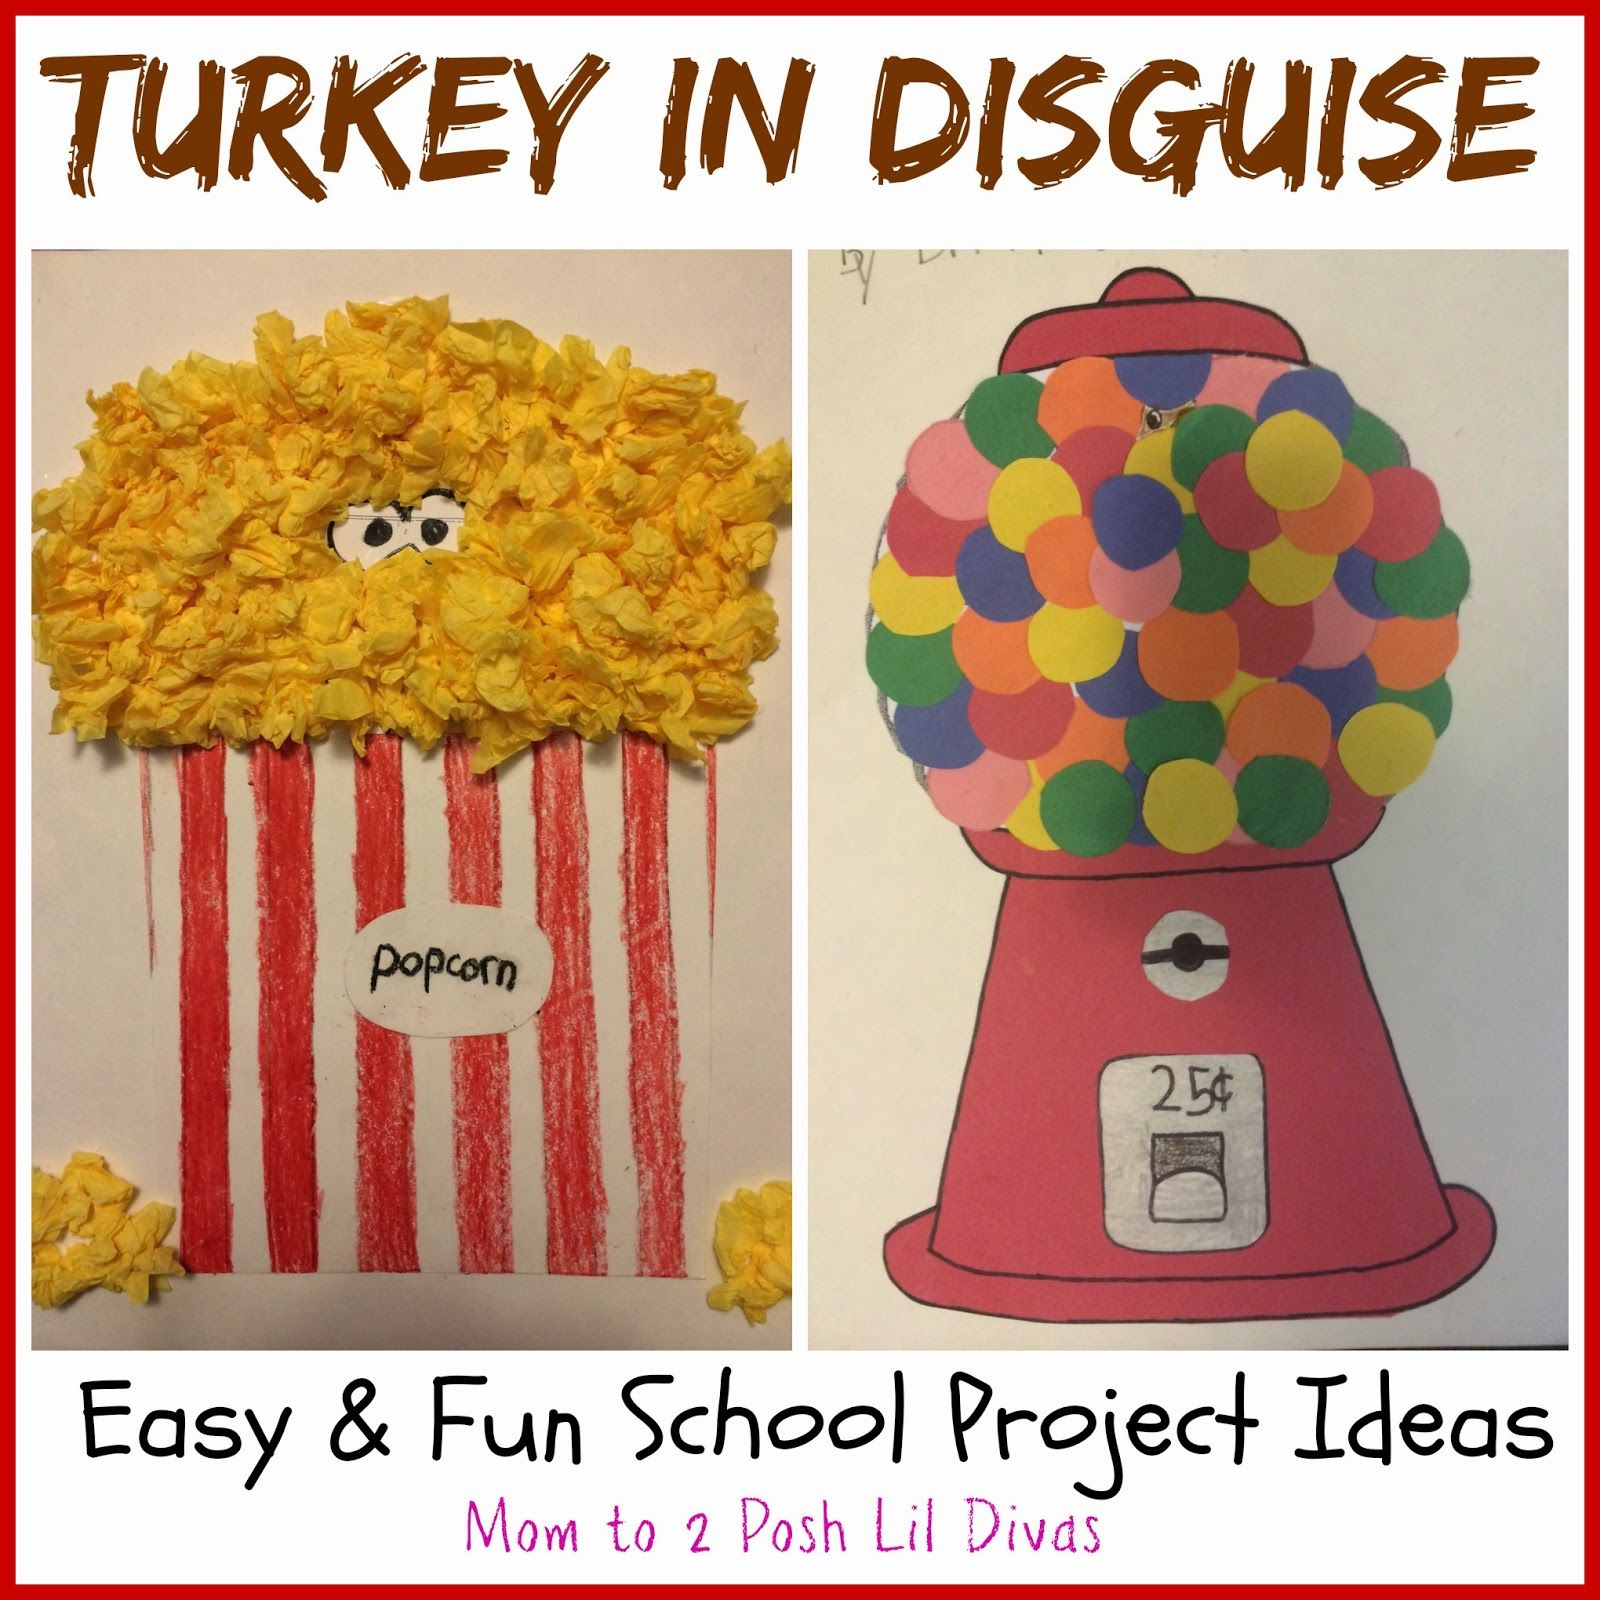 easy and fun turkey in disguise projects , a popcorn tub